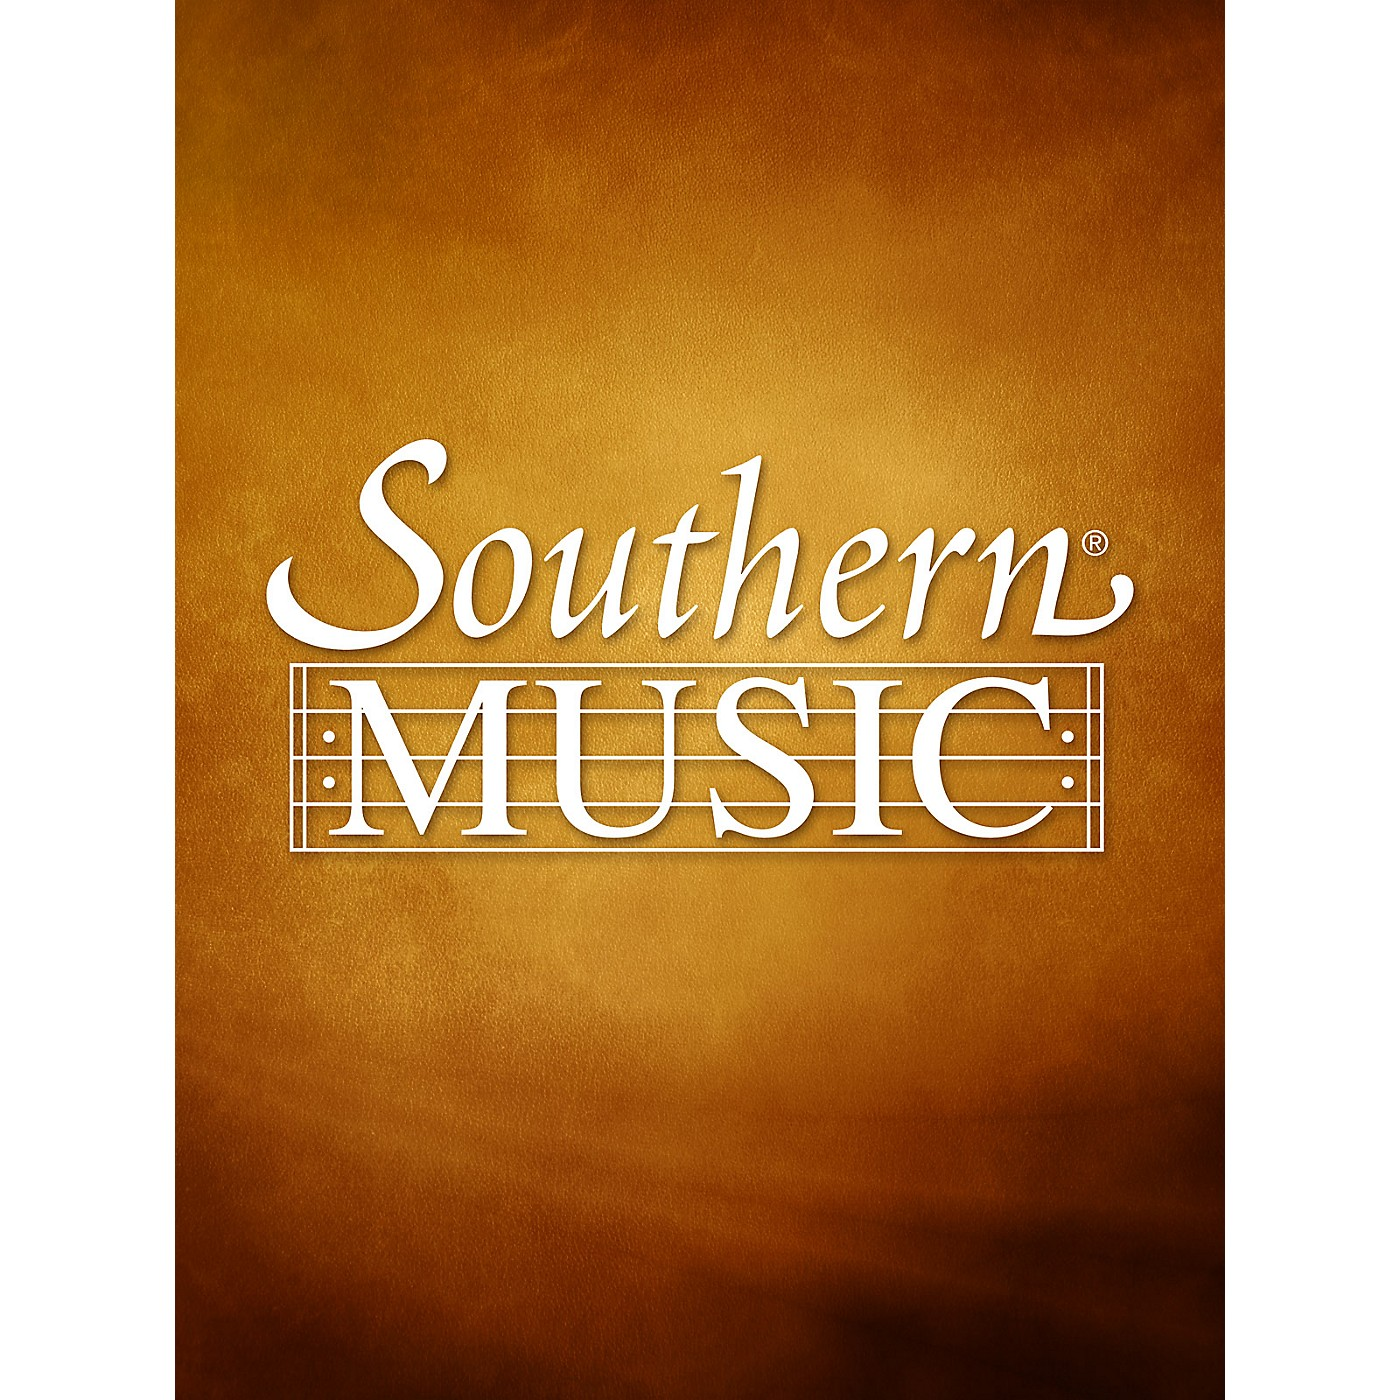 Southern Northern March - Youthful Suite, Mvt. 1 (Band/Concert Band Music) Concert Band Level 4 by R. Mark Rogers thumbnail